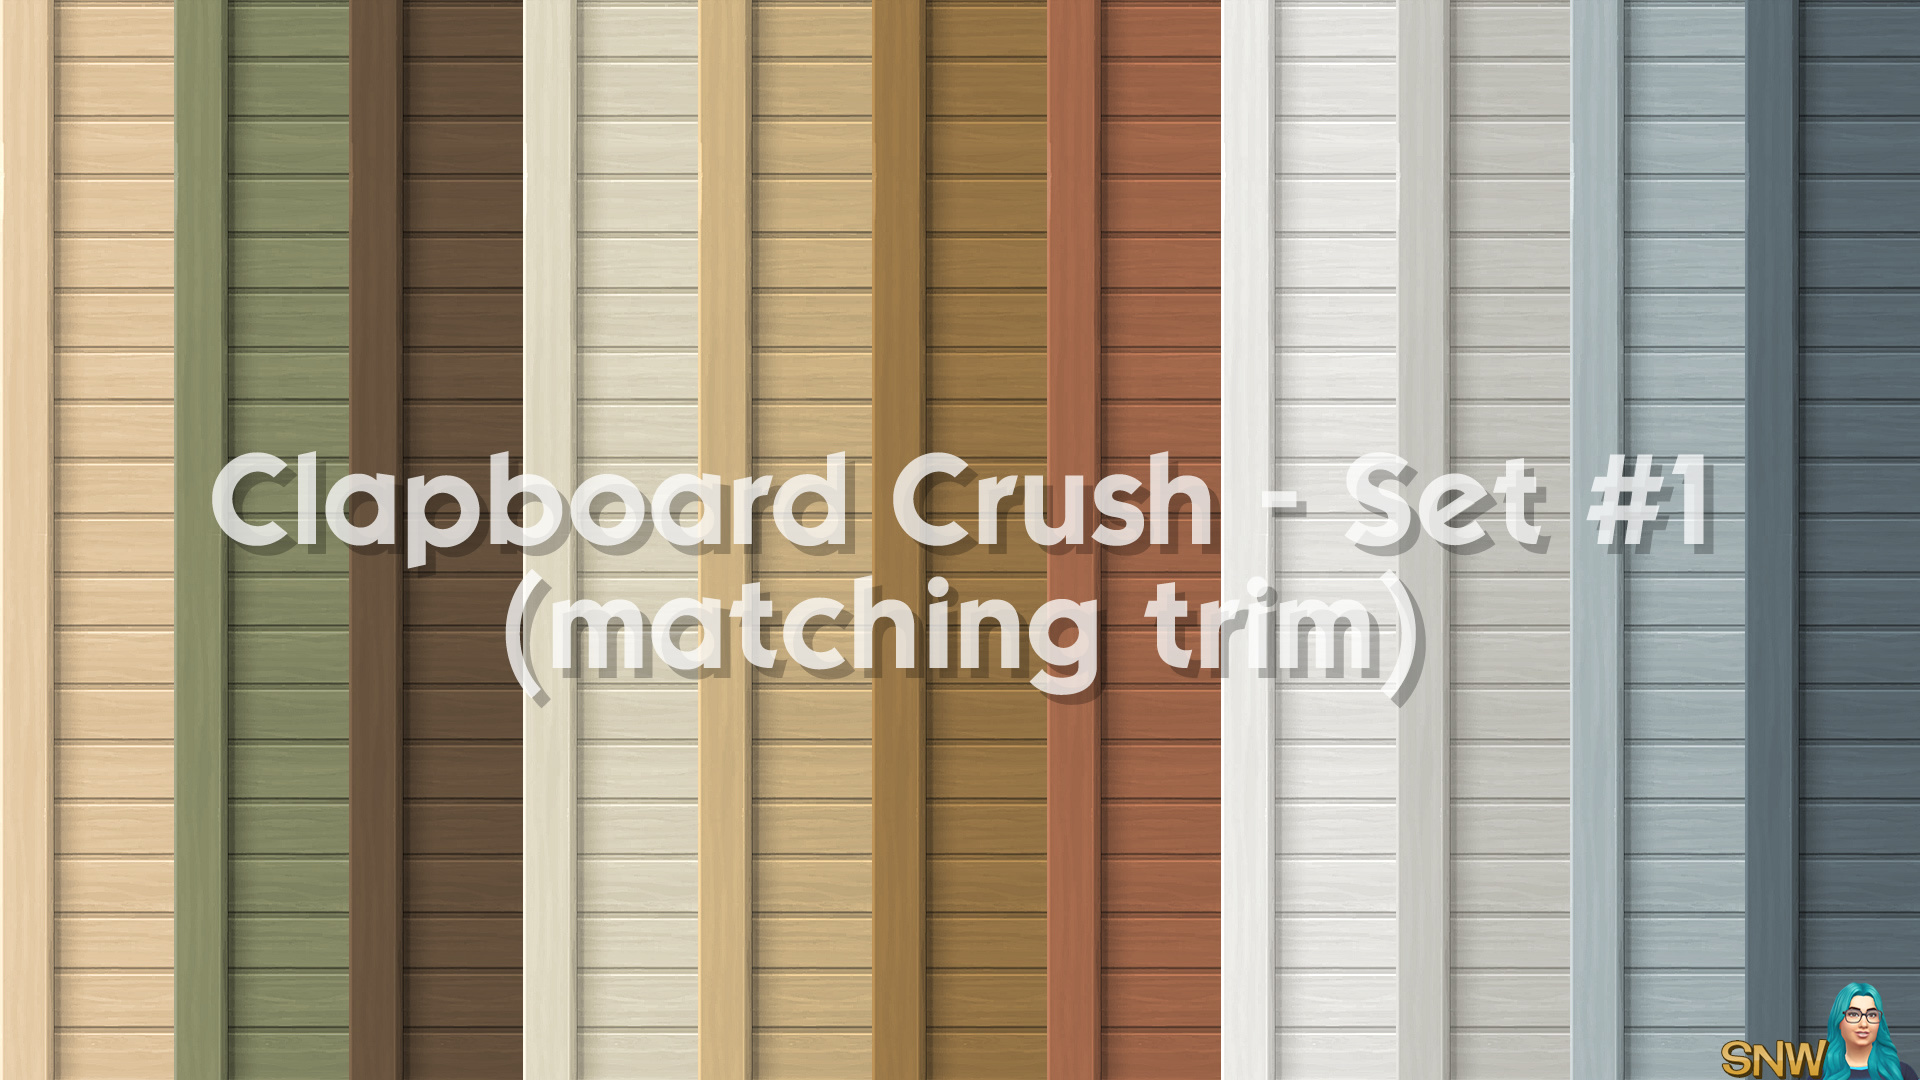 Clapboard Crush Siding Walls Set #1 (with Corner Trim)